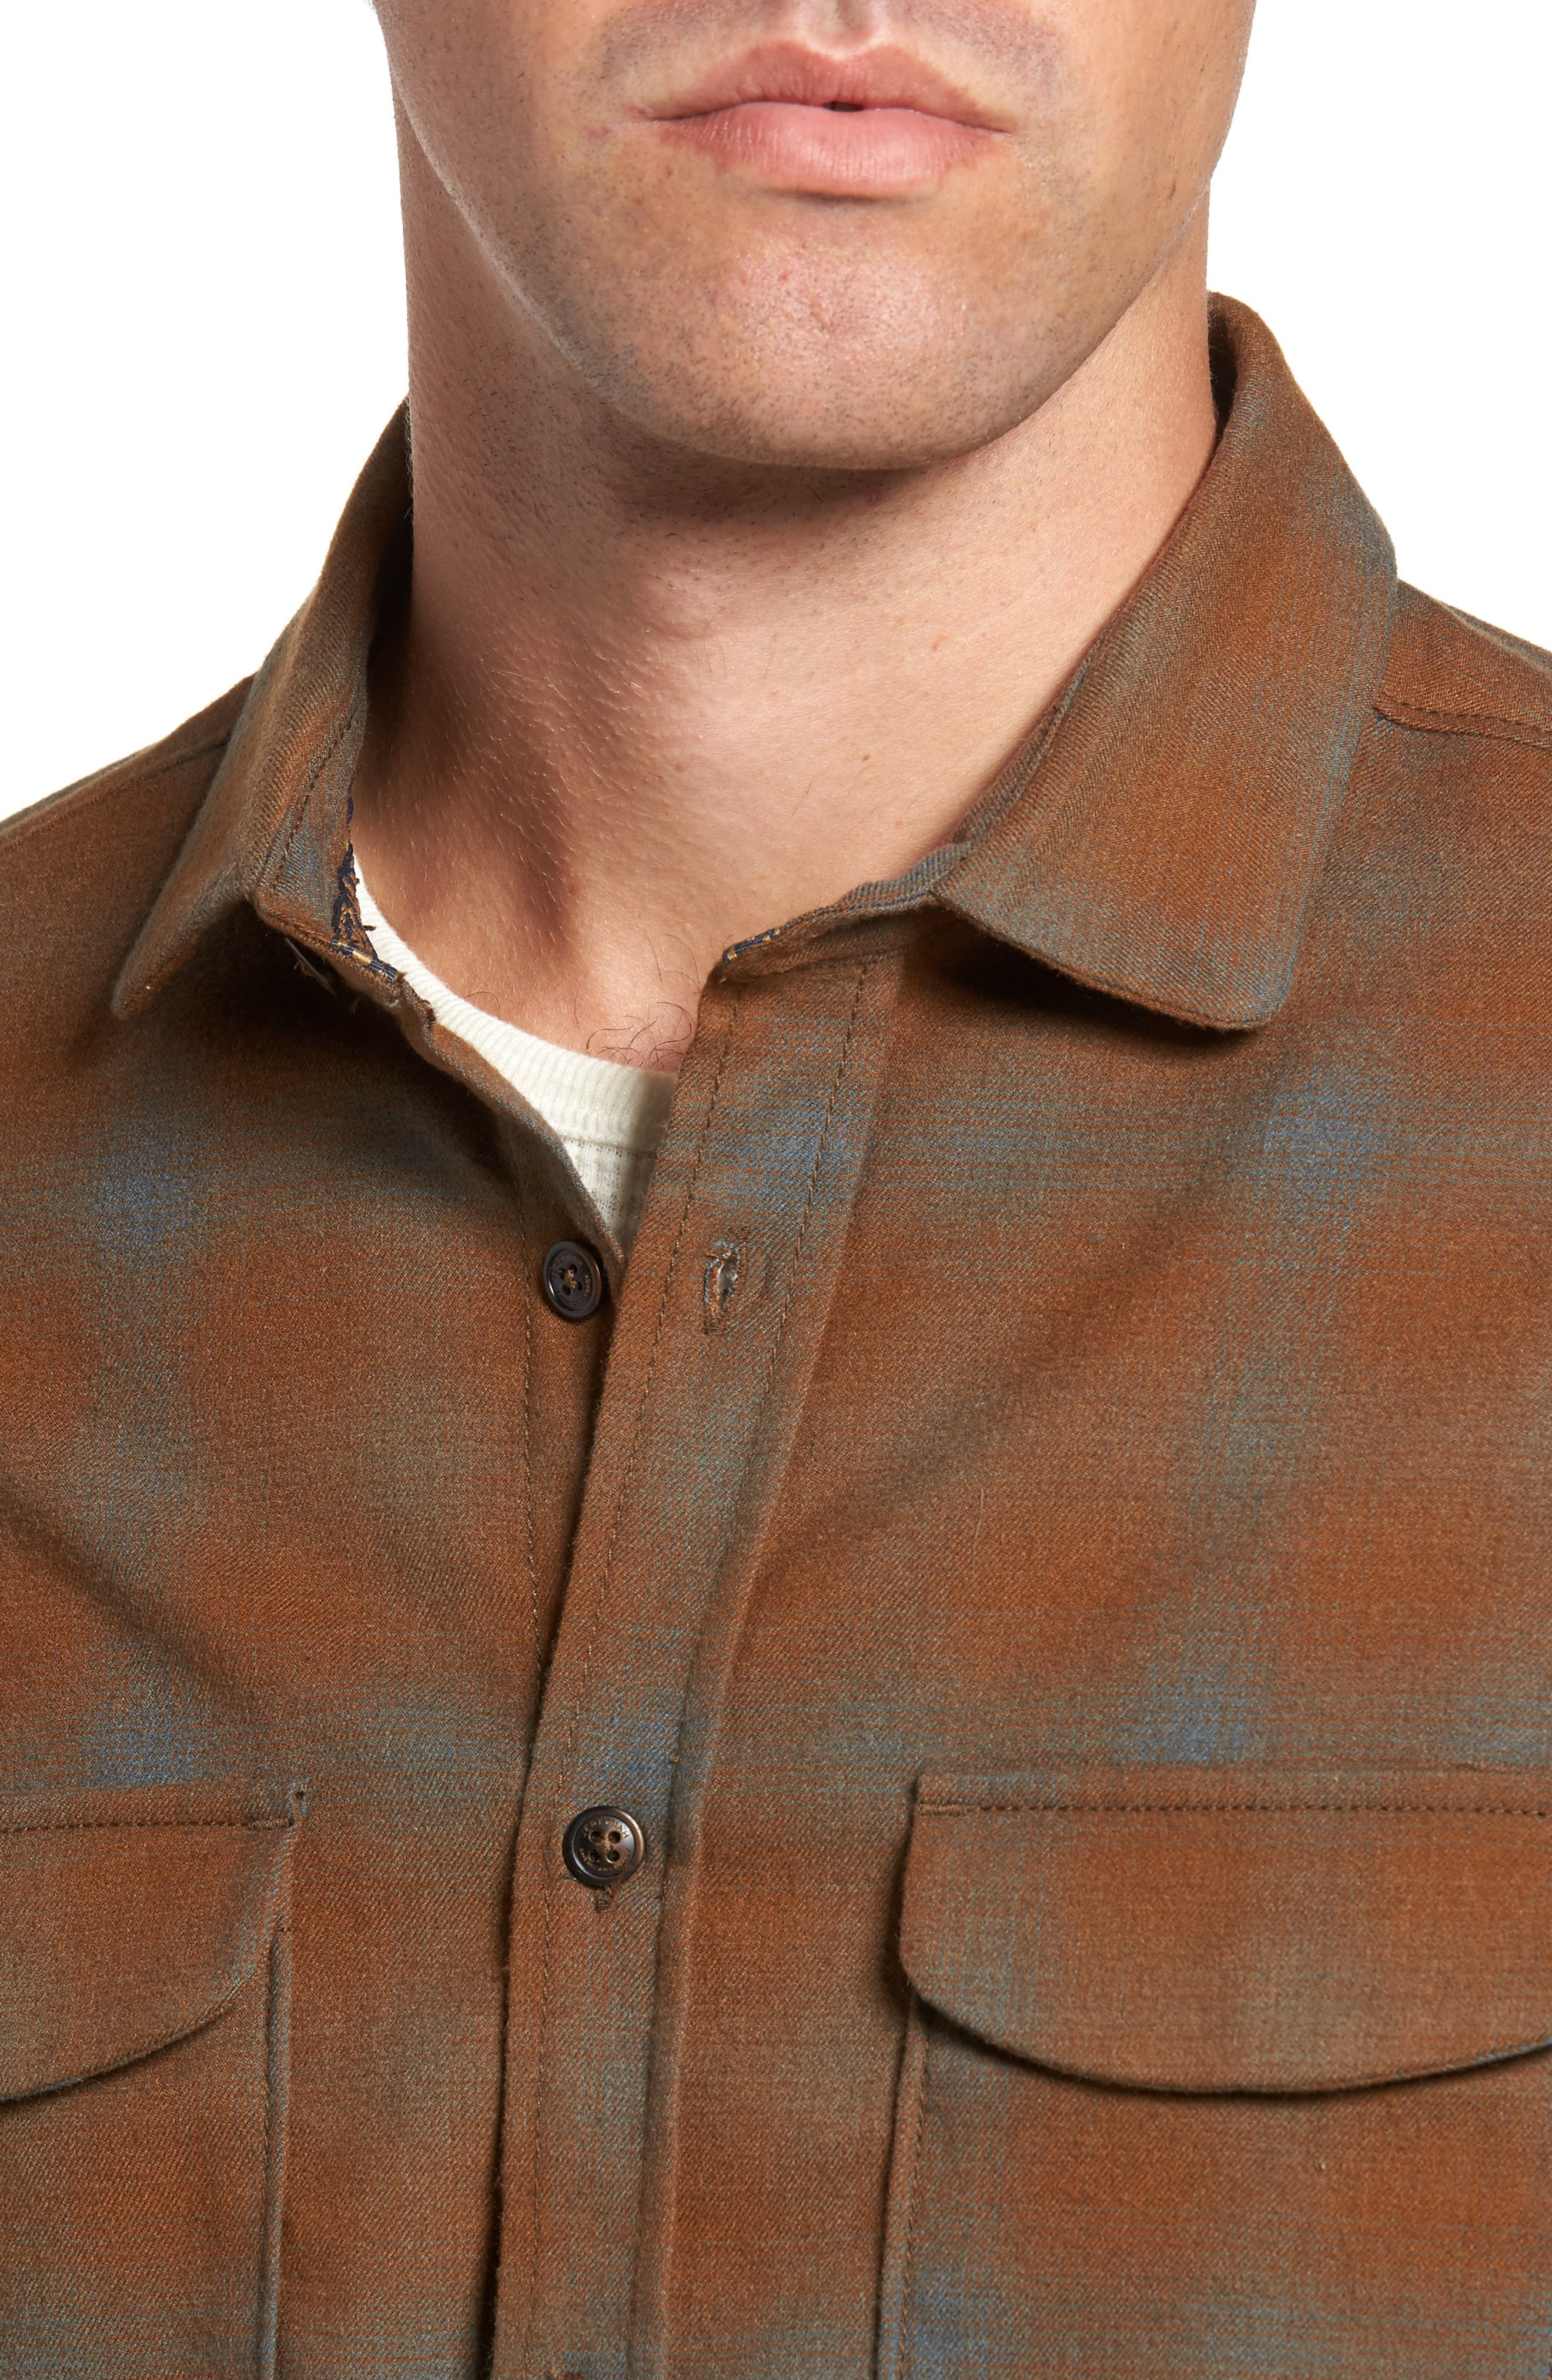 Peak Flannel Sport Shirt,                             Alternate thumbnail 4, color,                             Eagle Nest Heather